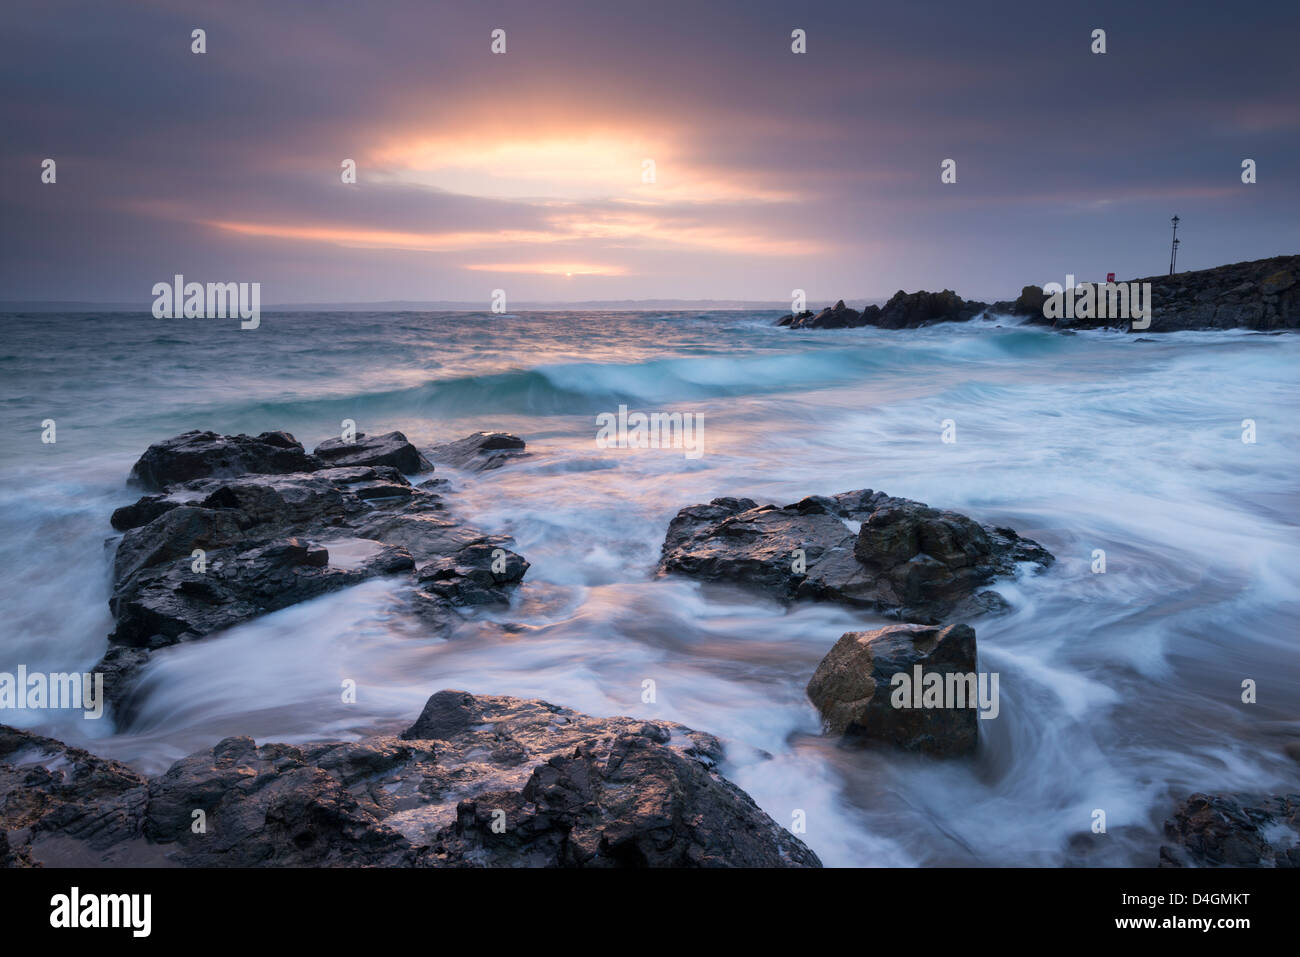 Sunrise at Porthgwidden Beach in St Ives, Cornwall, England. Winter (March) 2013. Stock Photo